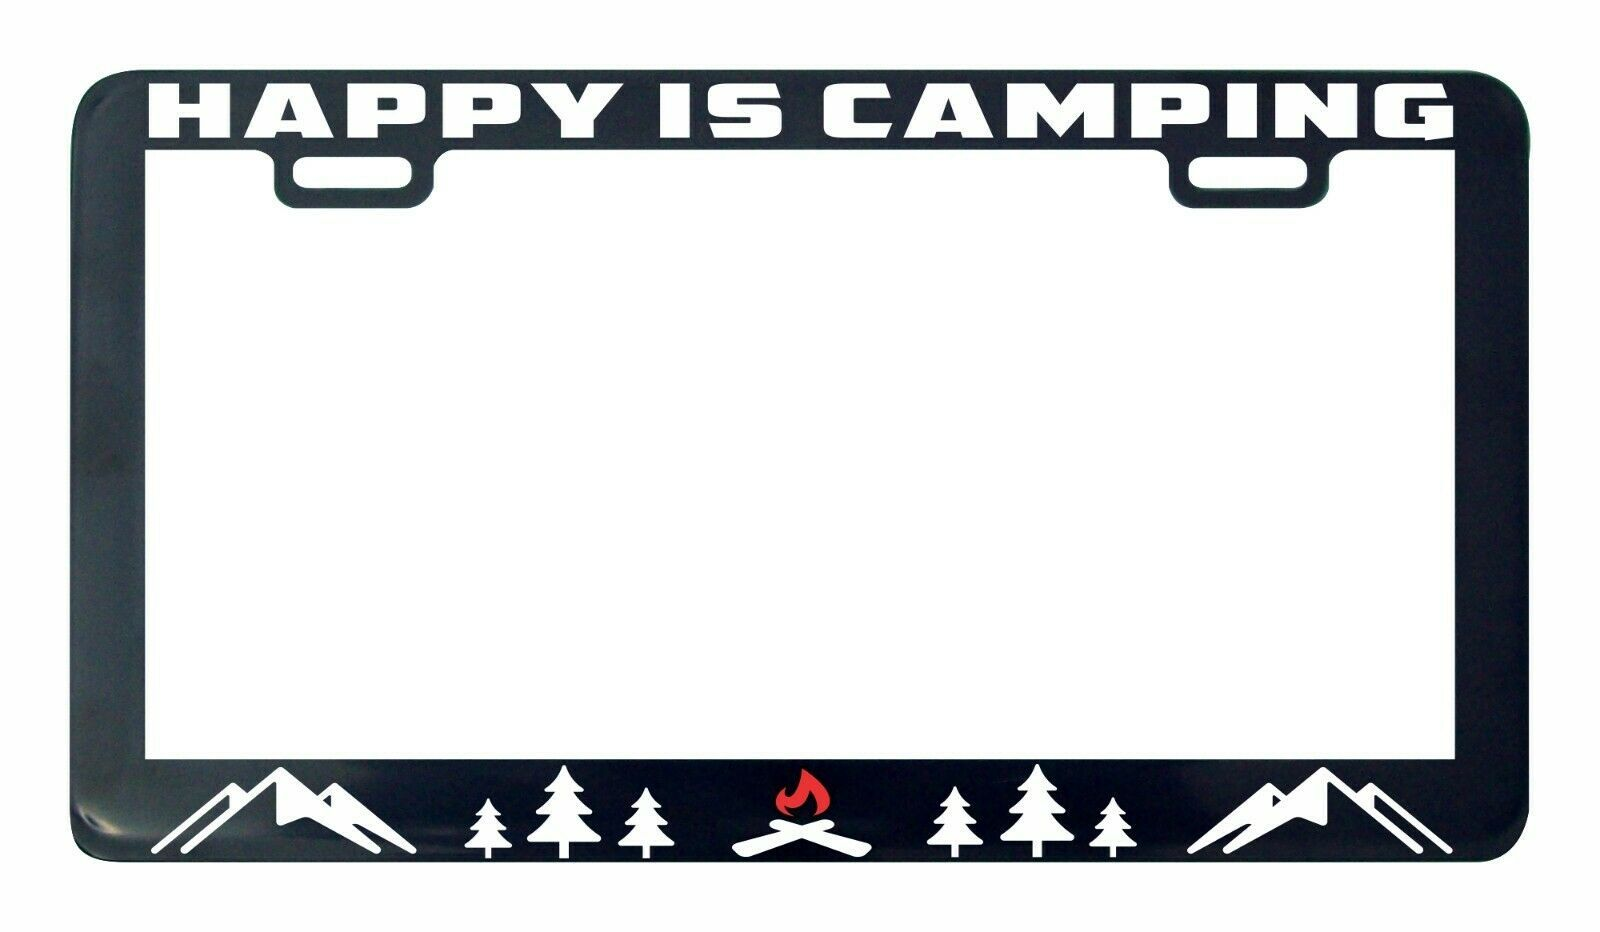 Primary image for Happiness is camping Adventure Awaits license plate frame holder tag